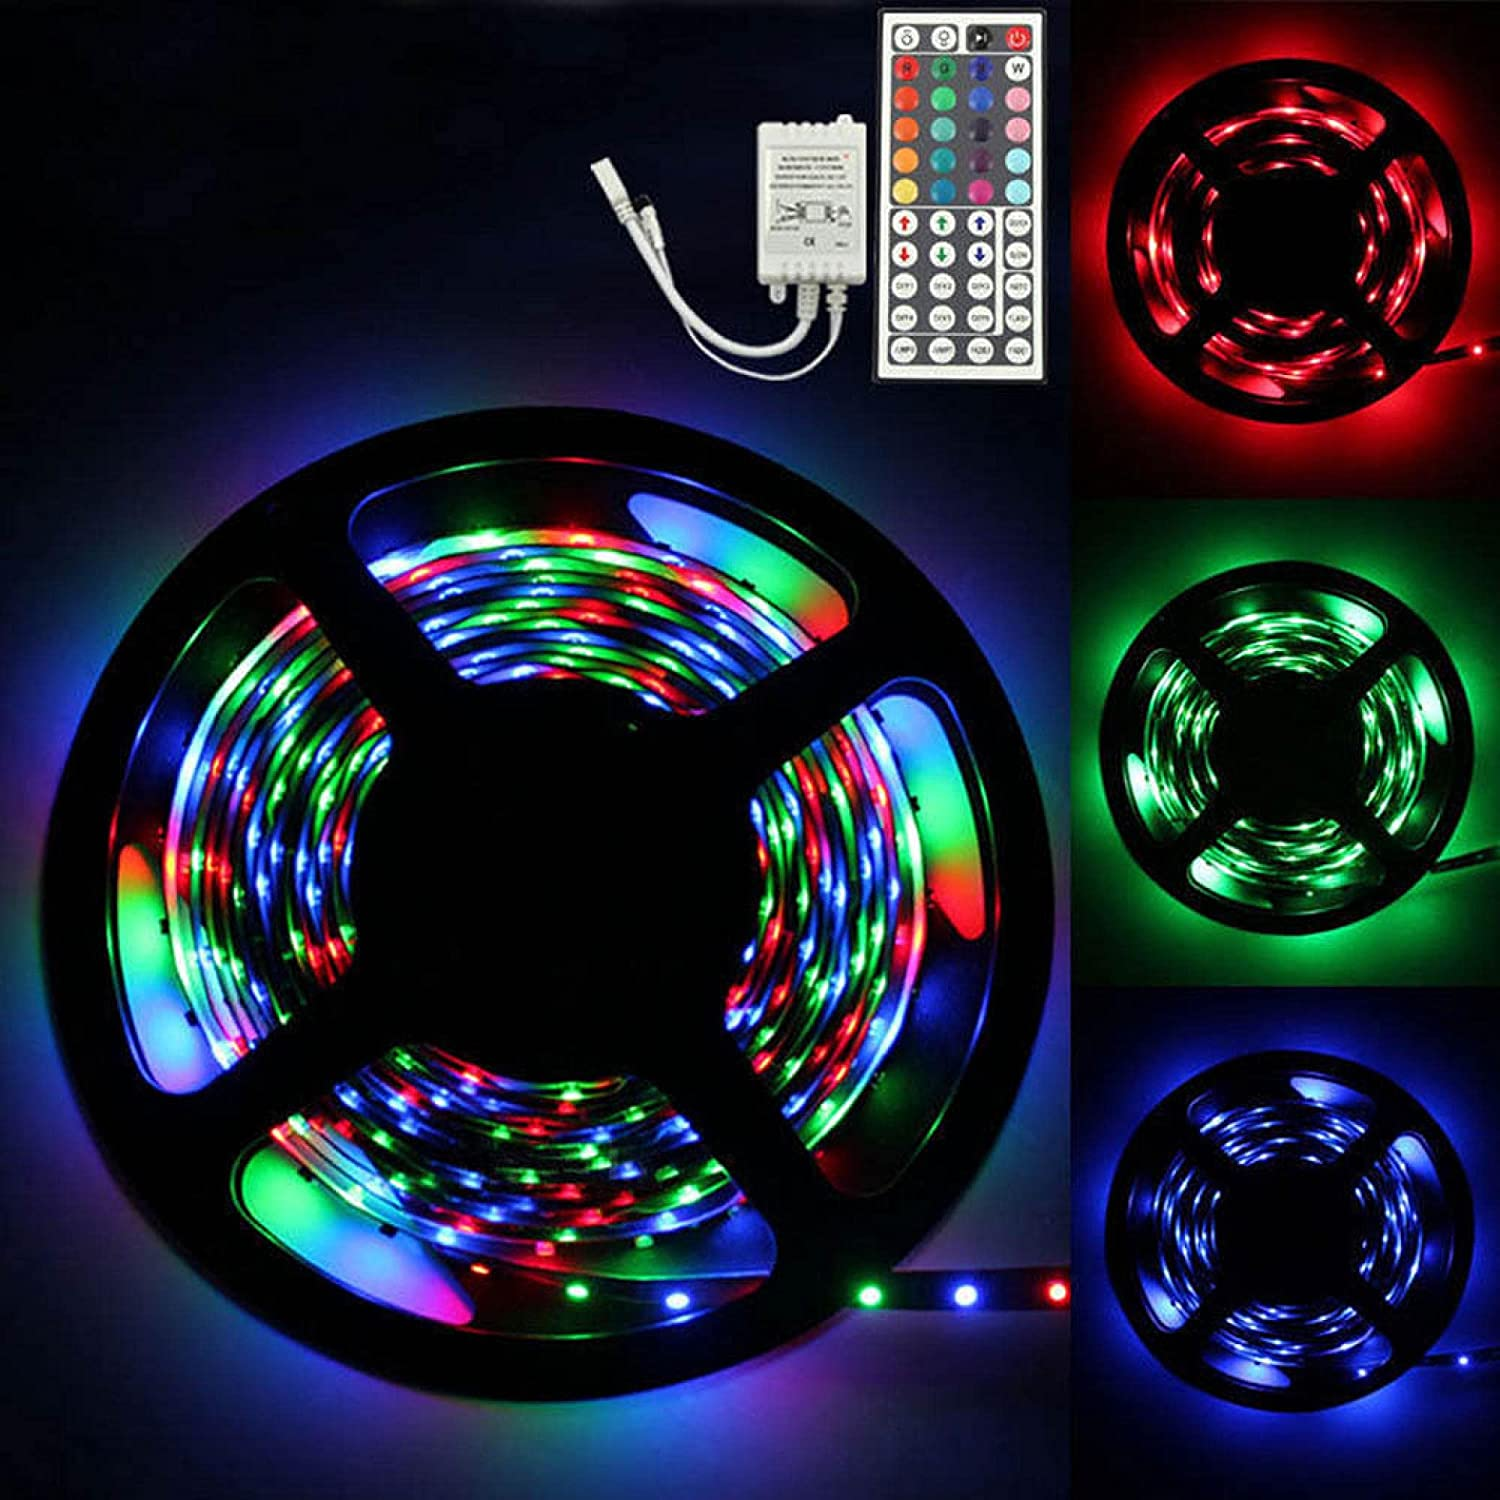 Waterproof LED Strip Light with Color Changing, Flexible Strip Lamp with 44 Key Remote Controller, Fits Party Decoration, Home, TV Backlight, Smart Home WiFi Strip Light (Without Charger)